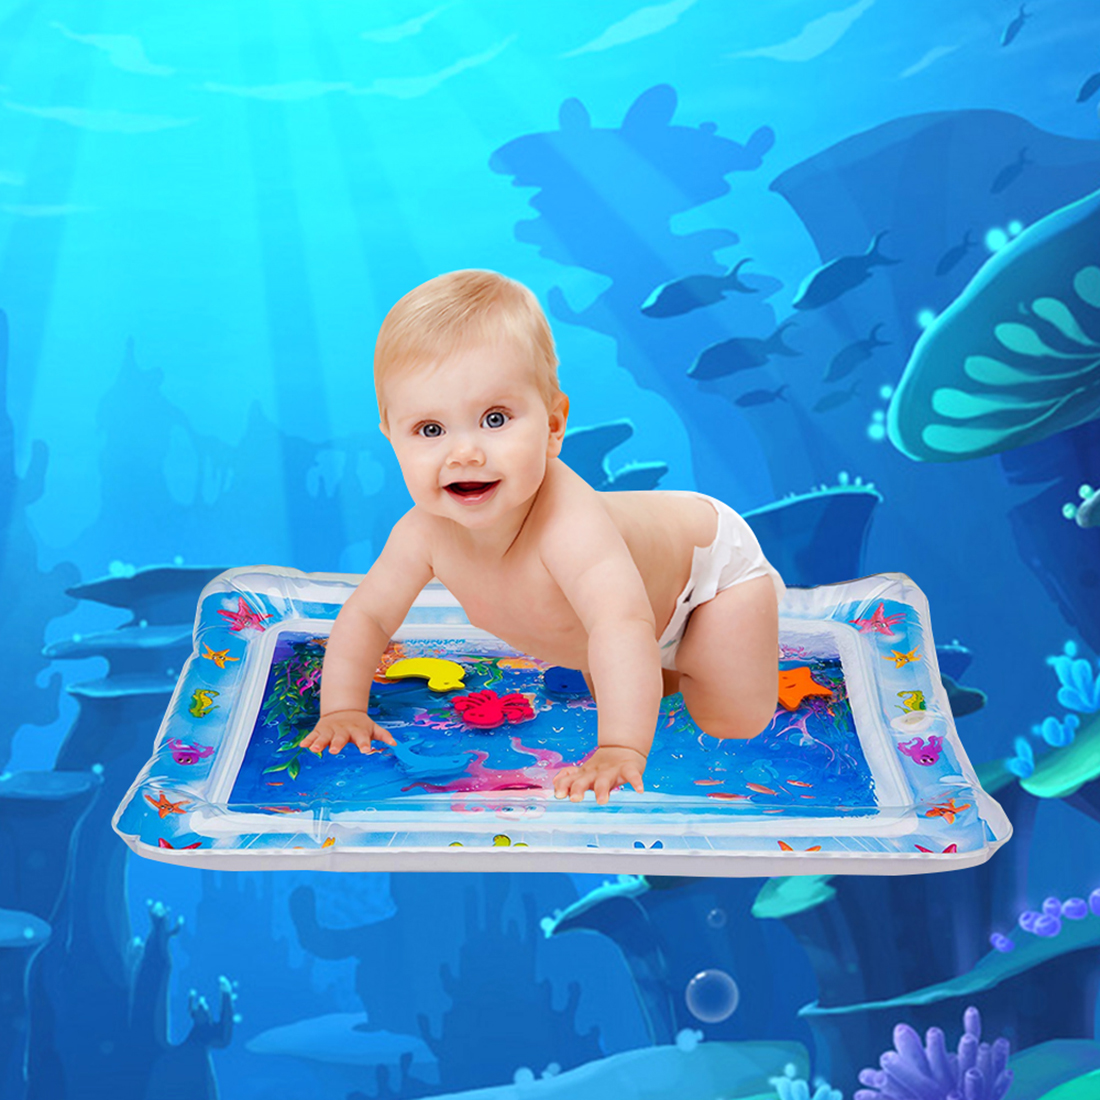 Summer Baby & Kids  Floats Inflatable Baby Pad Water Mat Patted Play Cushion For Infant Pools & Water Fun